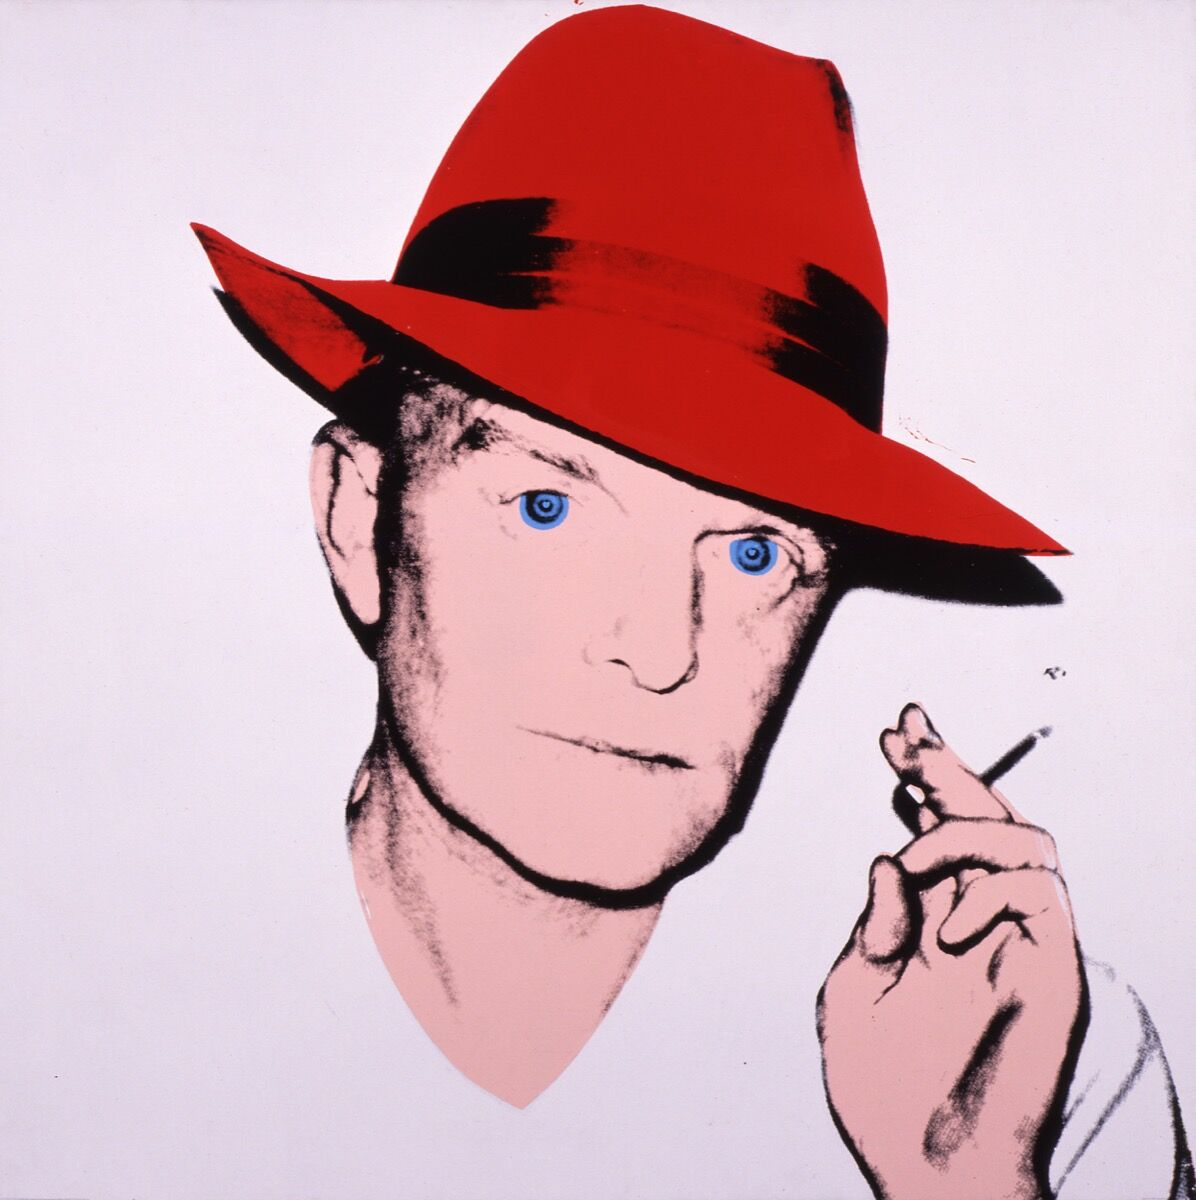 Andy Warhol (1928 – 1987), Truman Capote, 1979. © The Andy Warhol Foundation for the Visual Arts, Inc. / Artists Rights Society (ARS) New York. Courtesy of the Whitney Museum of American Art.